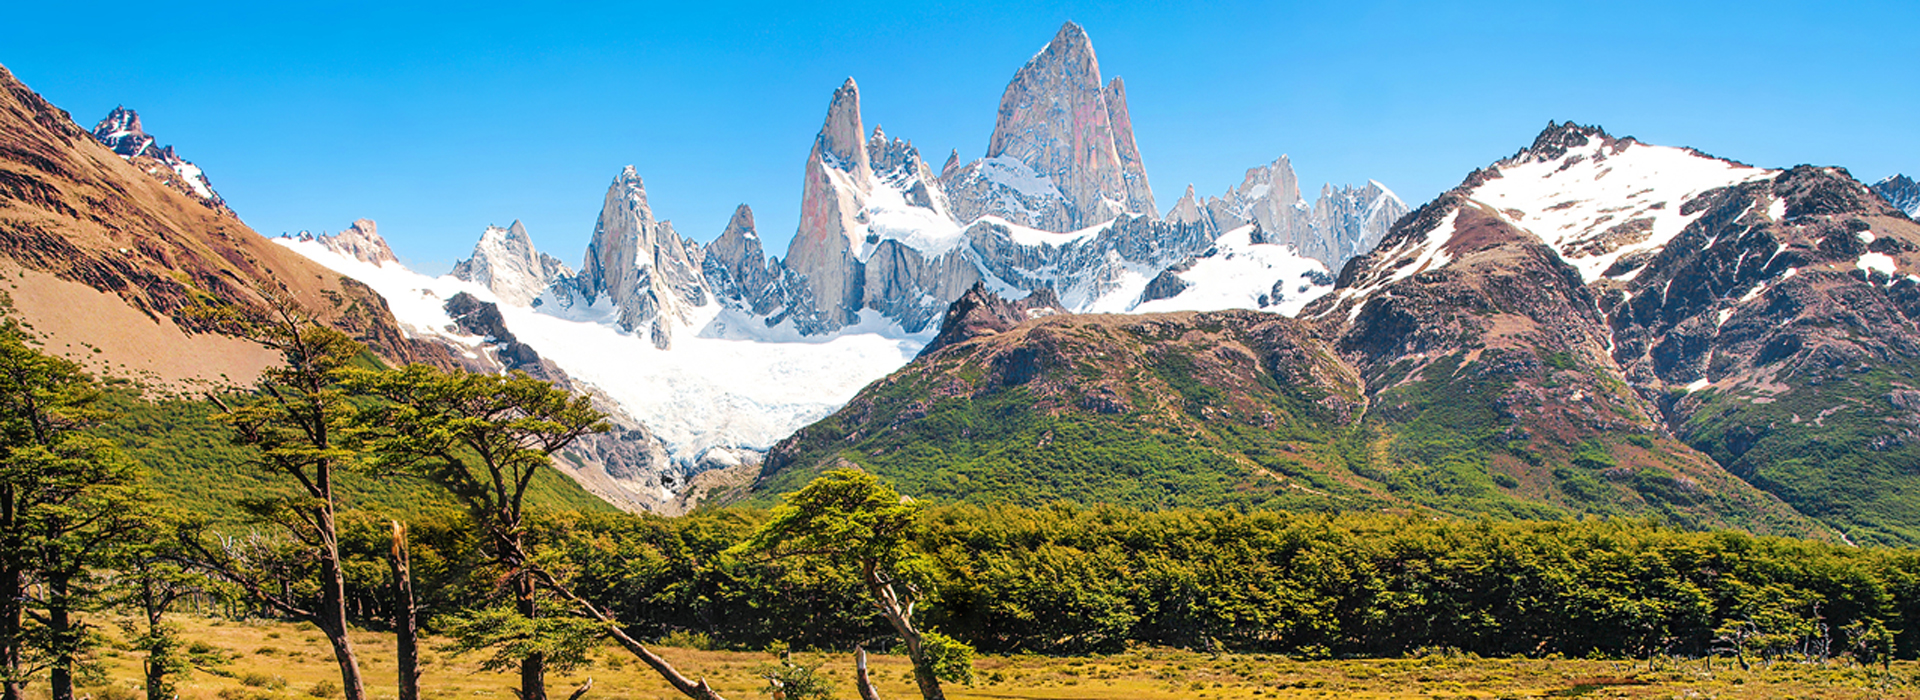 Beautiful-landscape-with-Mt-Fitz-Roy-in-Los-Glaciares-National-Park,-Patagonia,-Argentina,-South-America